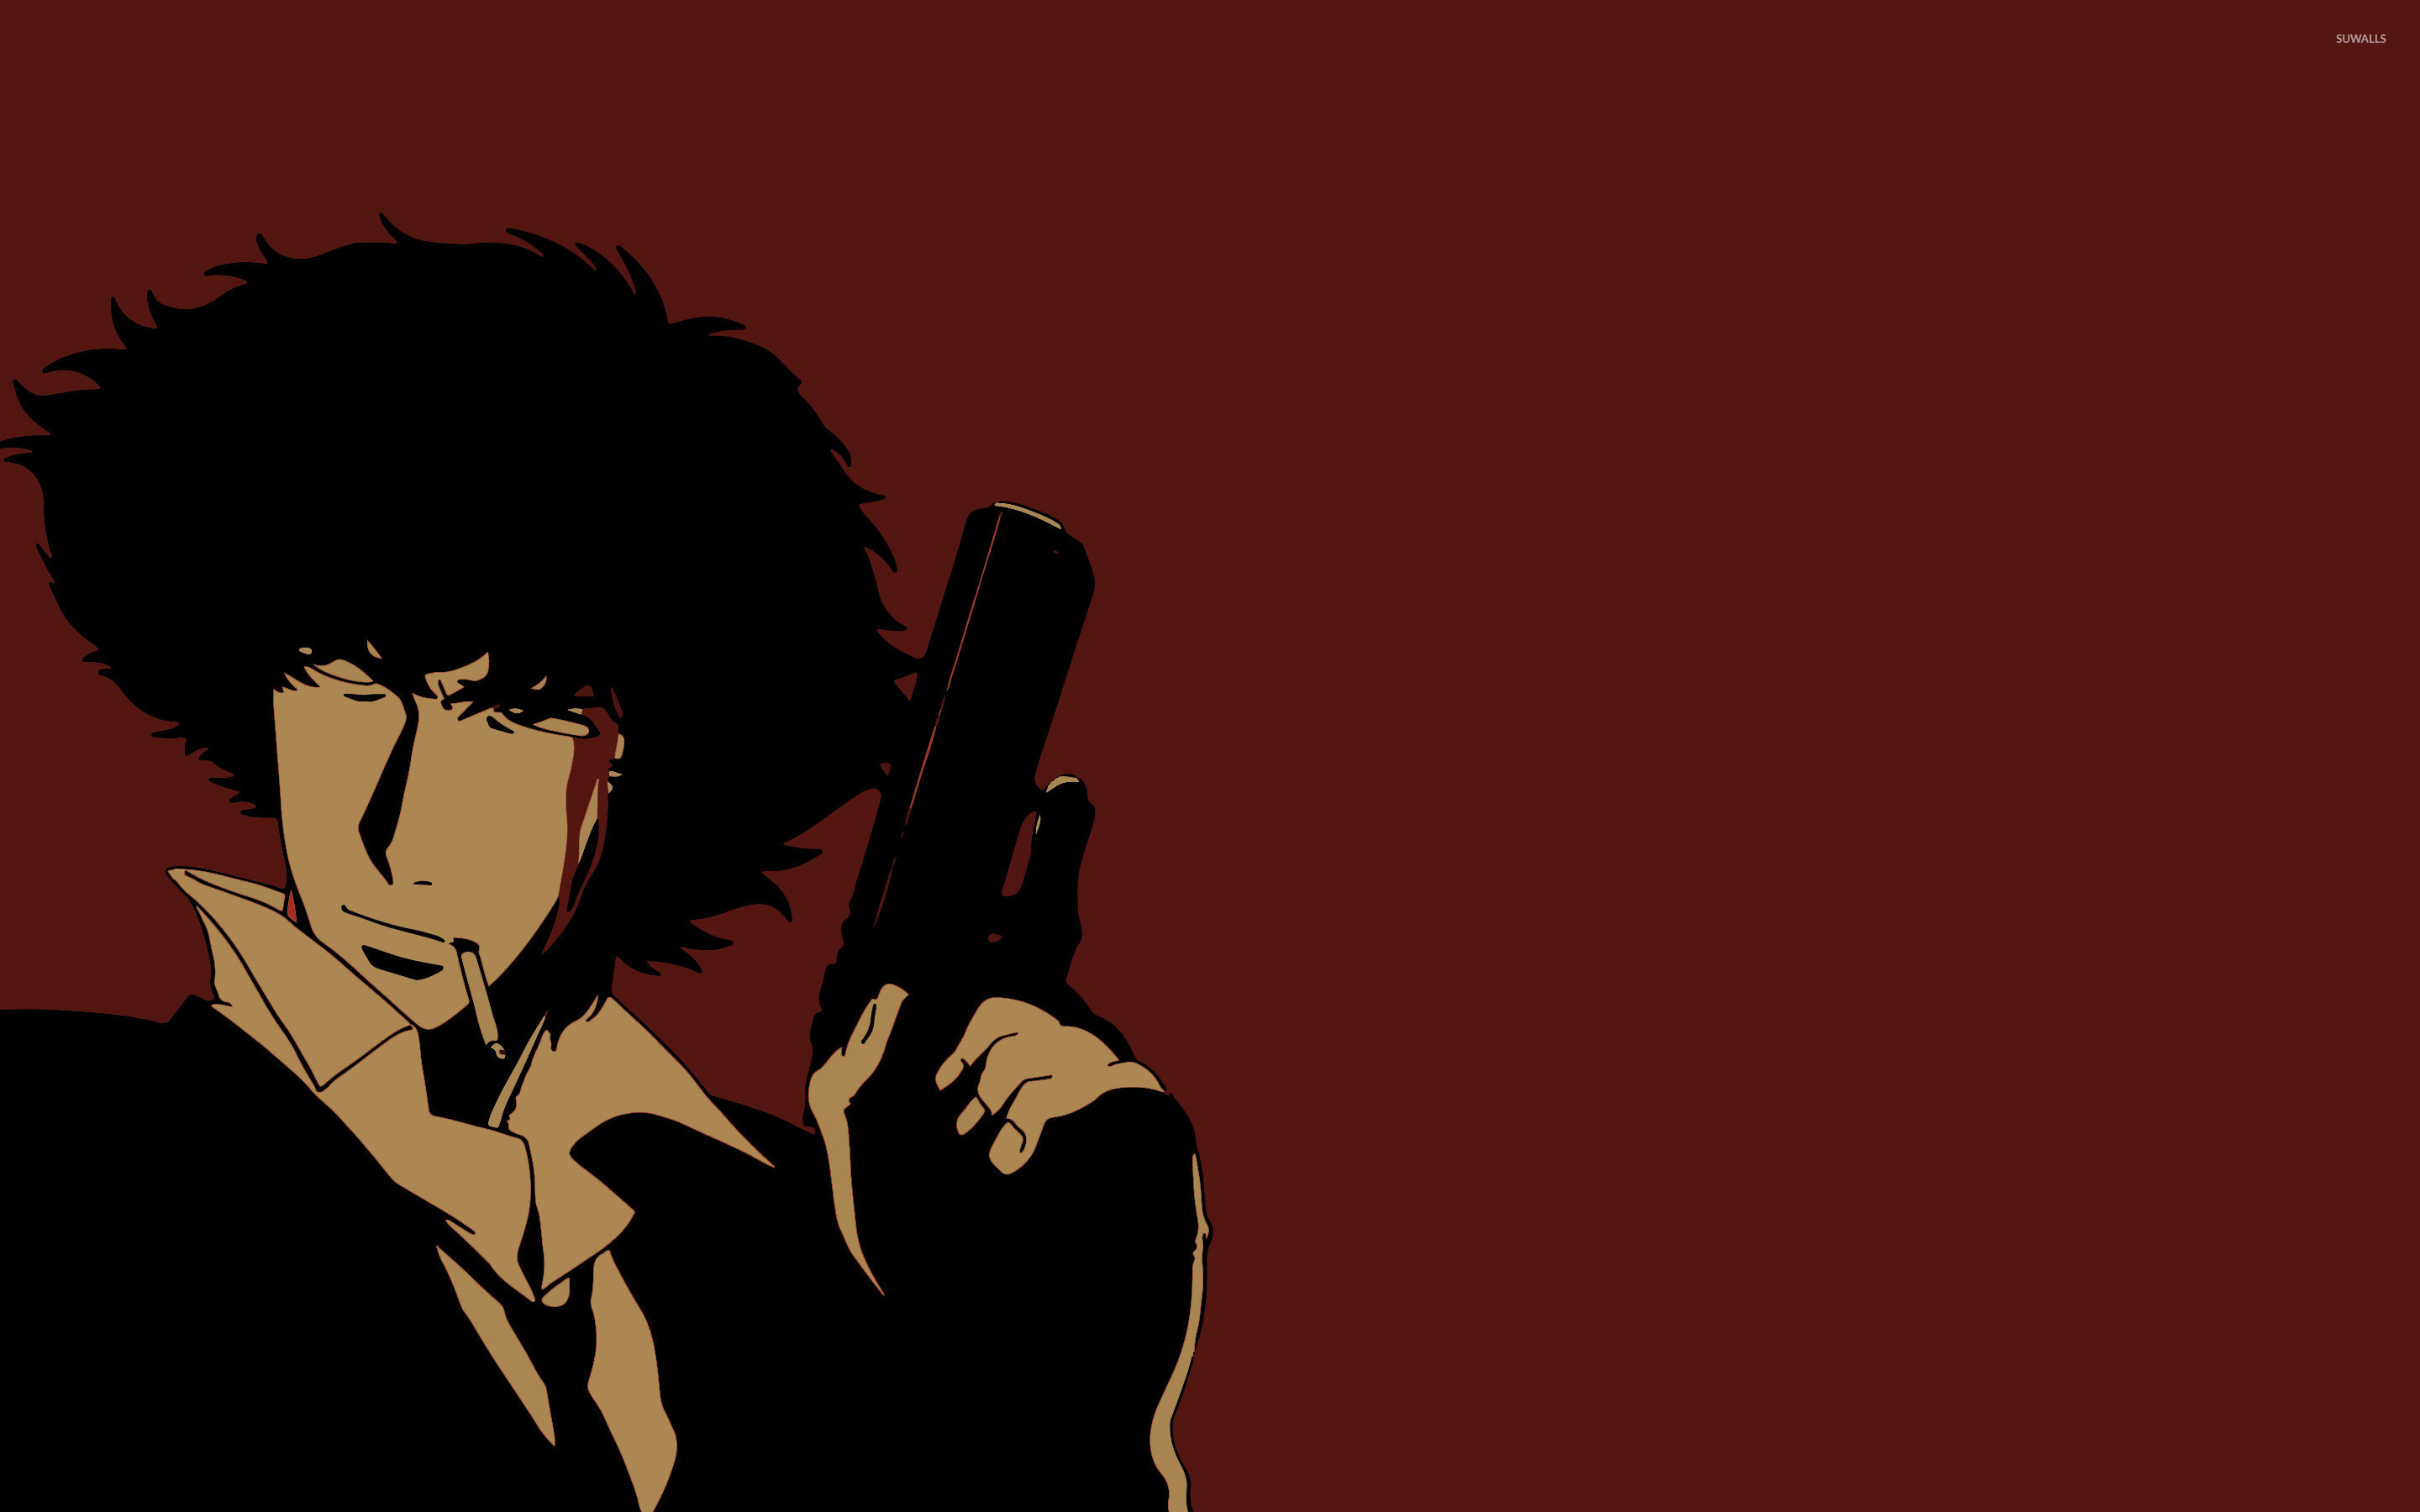 Spike Spiegel Cowboy Bebop 4 Wallpaper Anime